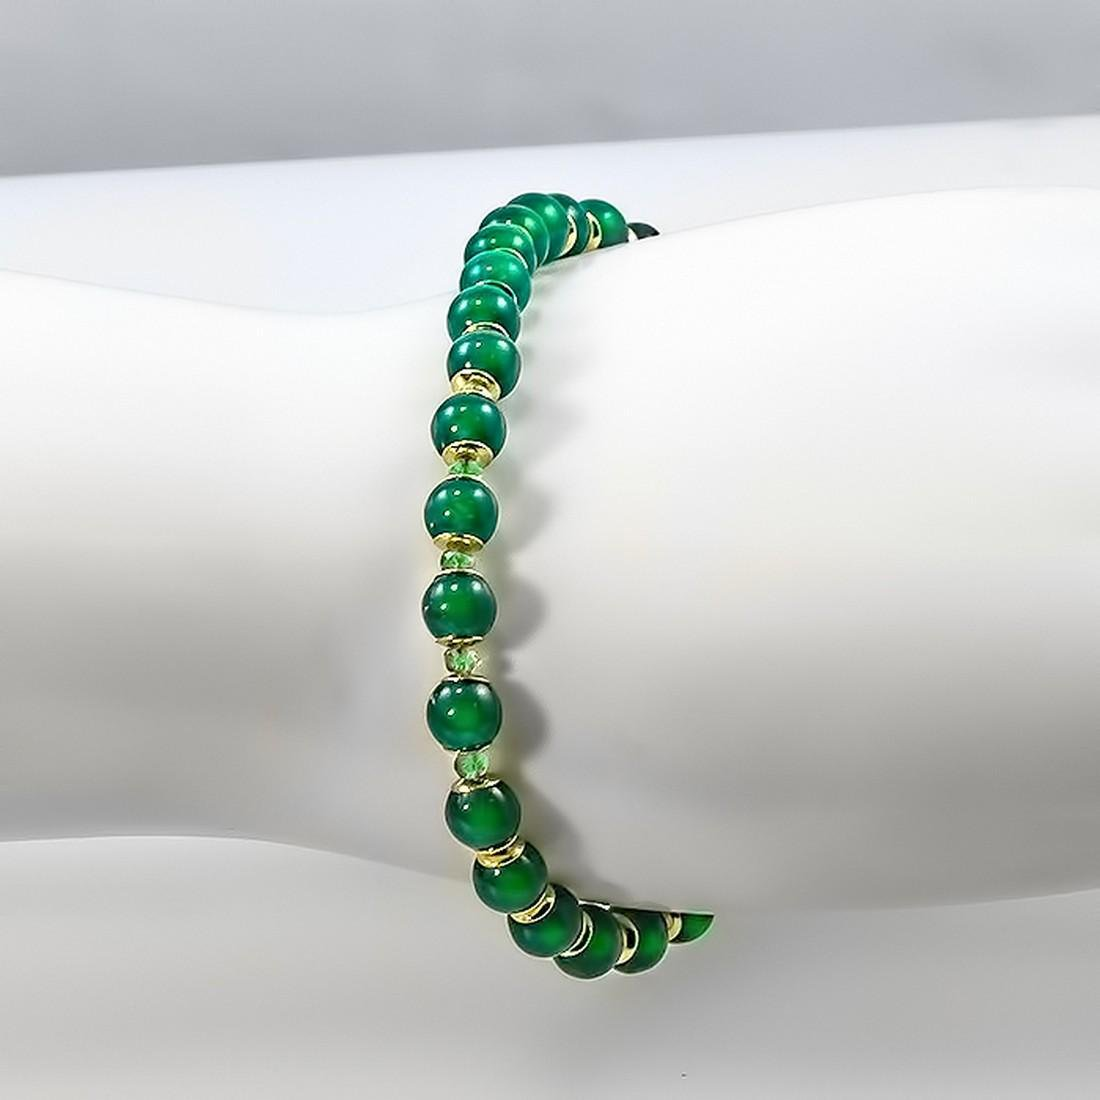 14K Jade Bracelet with Colombian Emeralds - 3